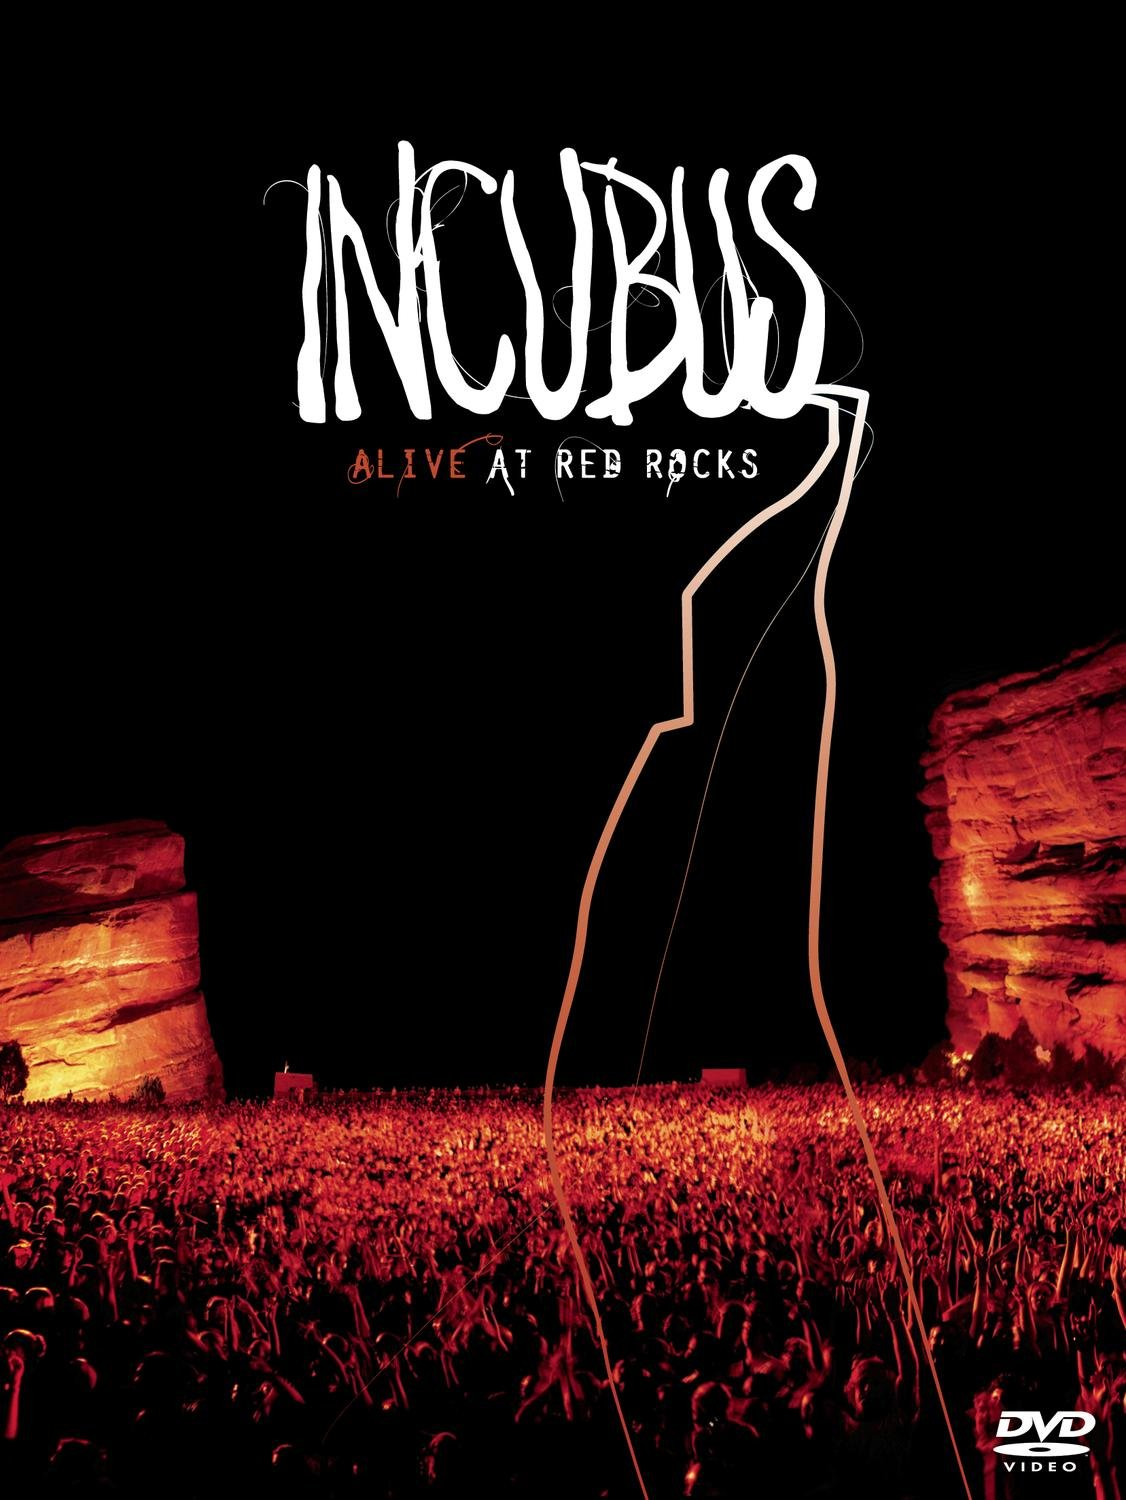 Incubus - Alive At Red Rocks - (DVD/CD combo in DVD digipak) by Sony